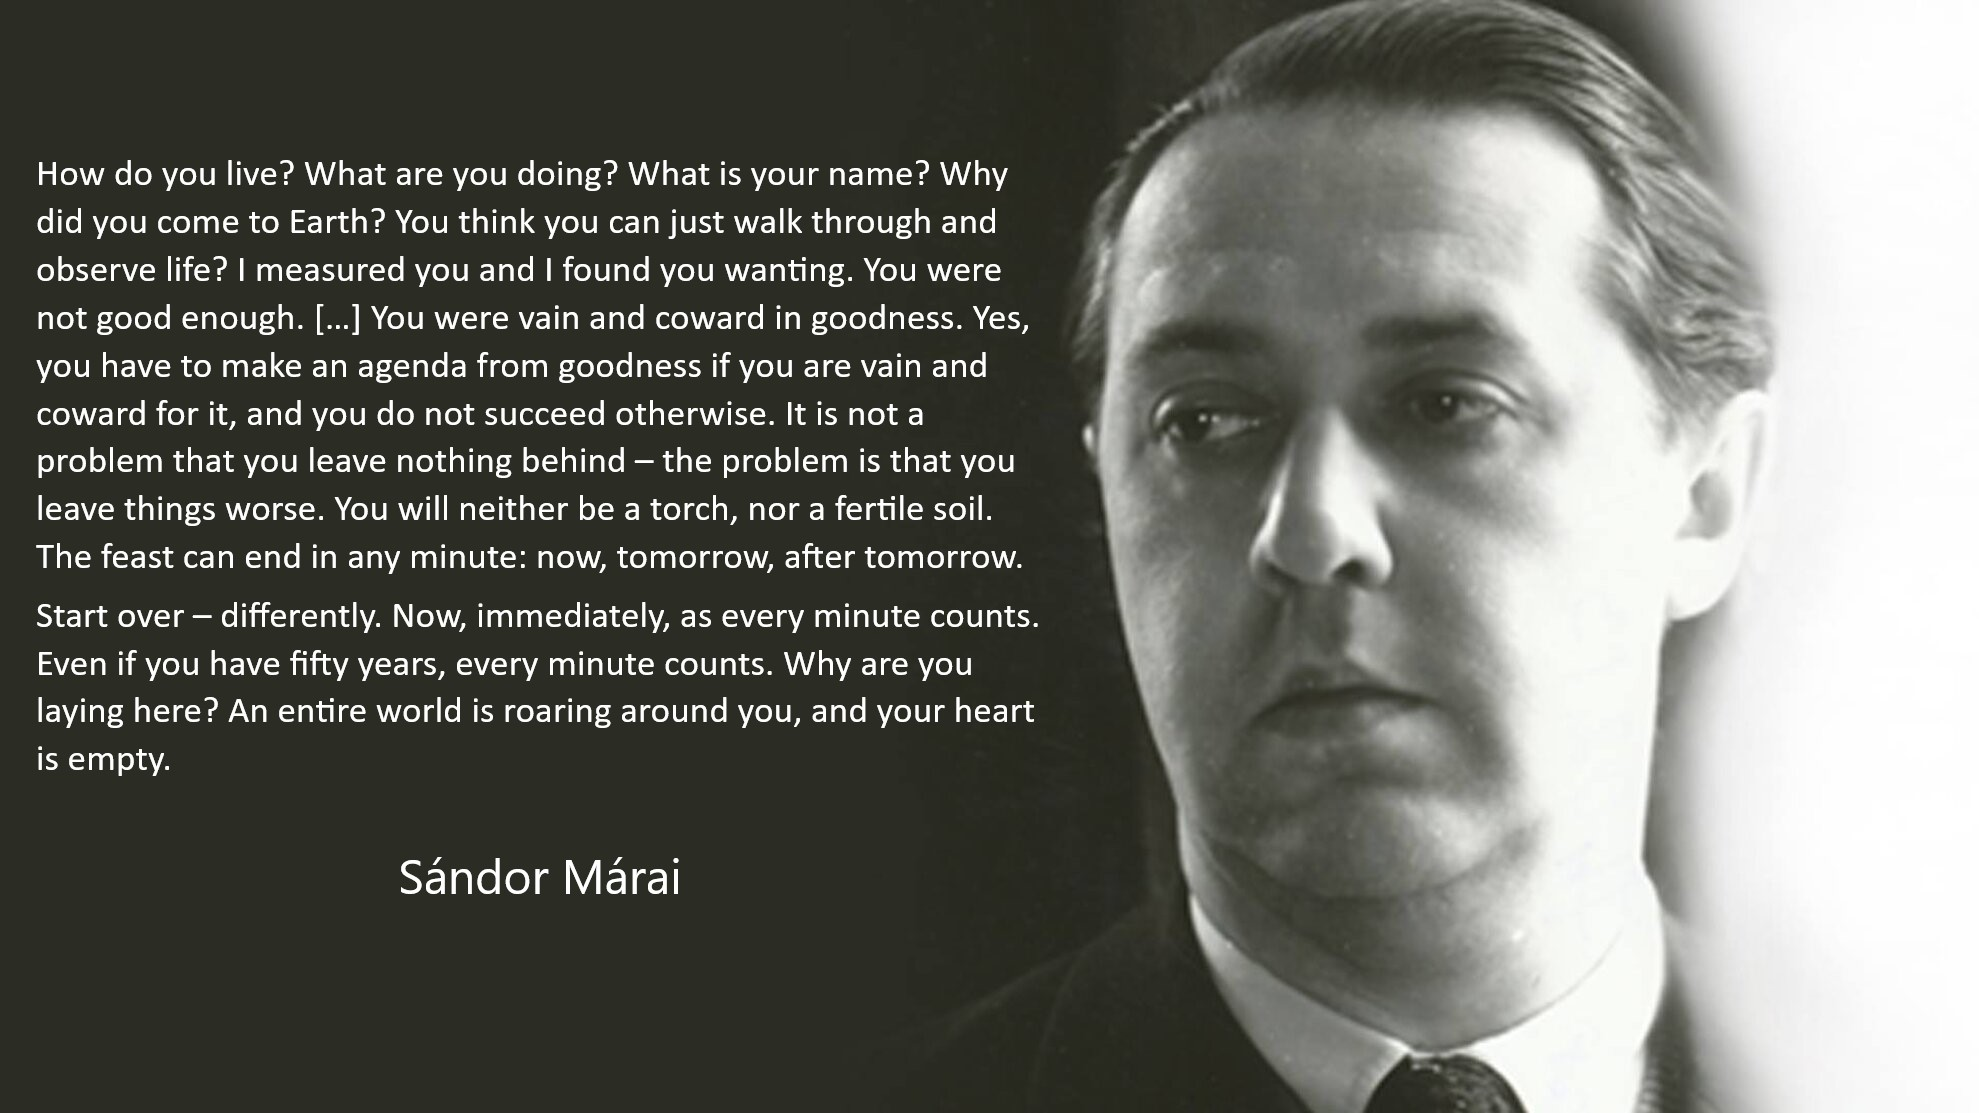 Start over – in another way. Now, immediately, as every minute counts. Even if you have fifty years, every minute counts. Why are you laying here? An entire world is roaring around you, and your heart is empty. (Sándor Márai) [1979×1113]